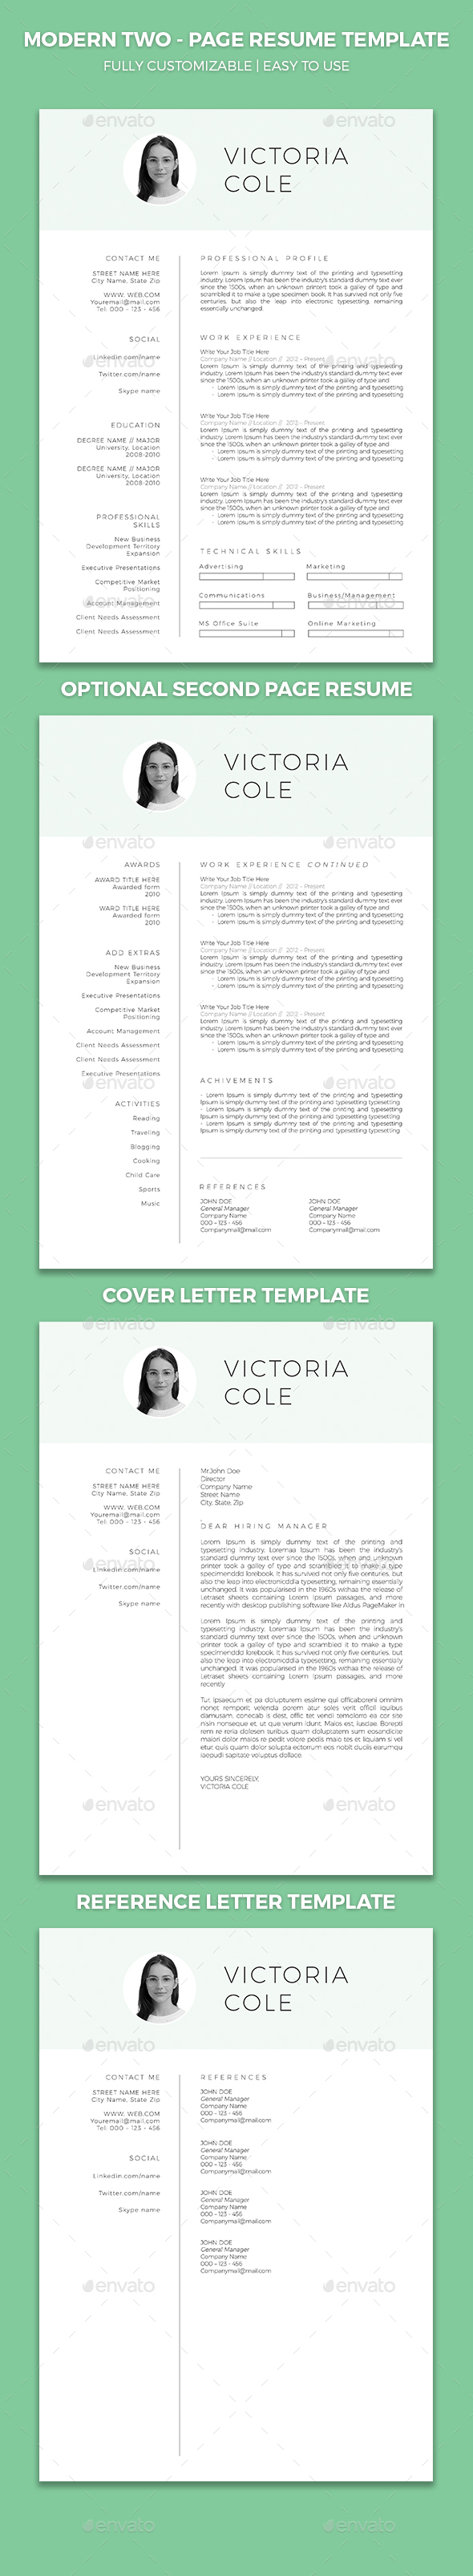 Resume Template with Cover Letter and Reference Letter - Resumes Stationery